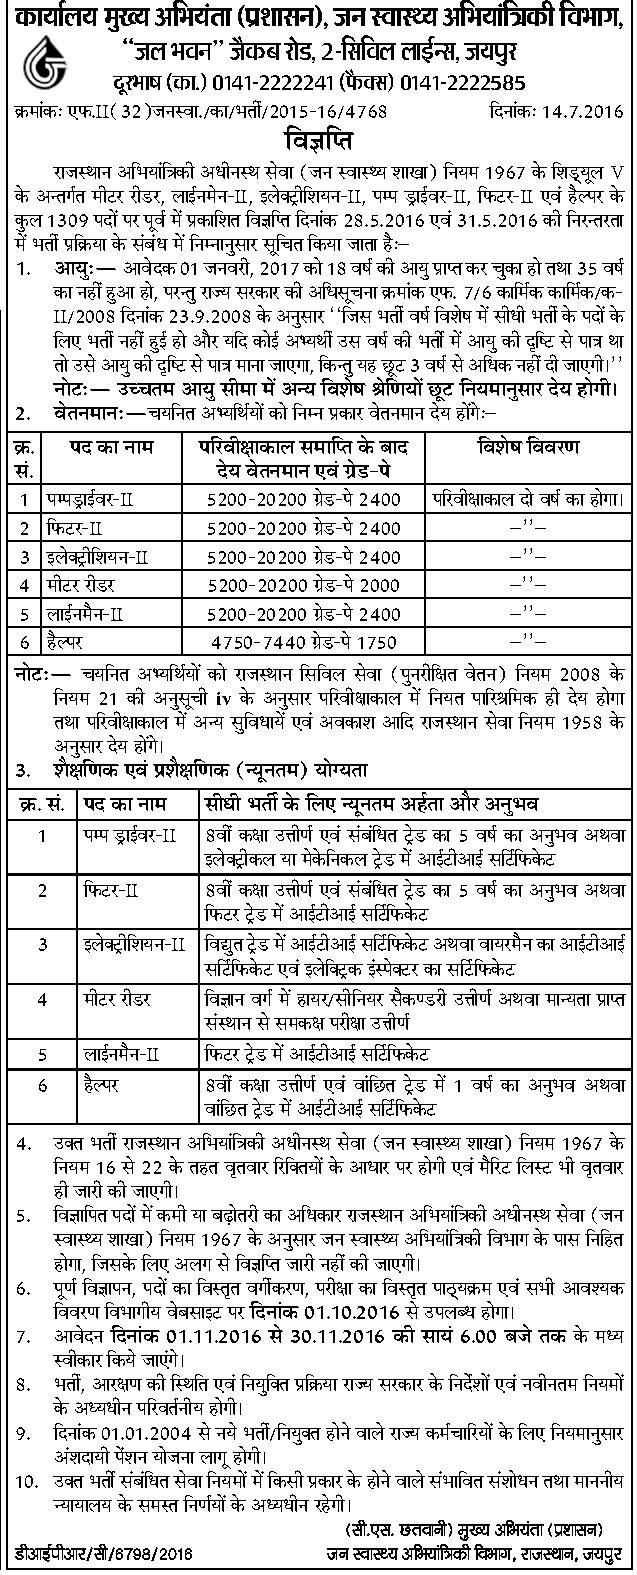 Rajasthan-PHED-Recruitment-Revised-Notification